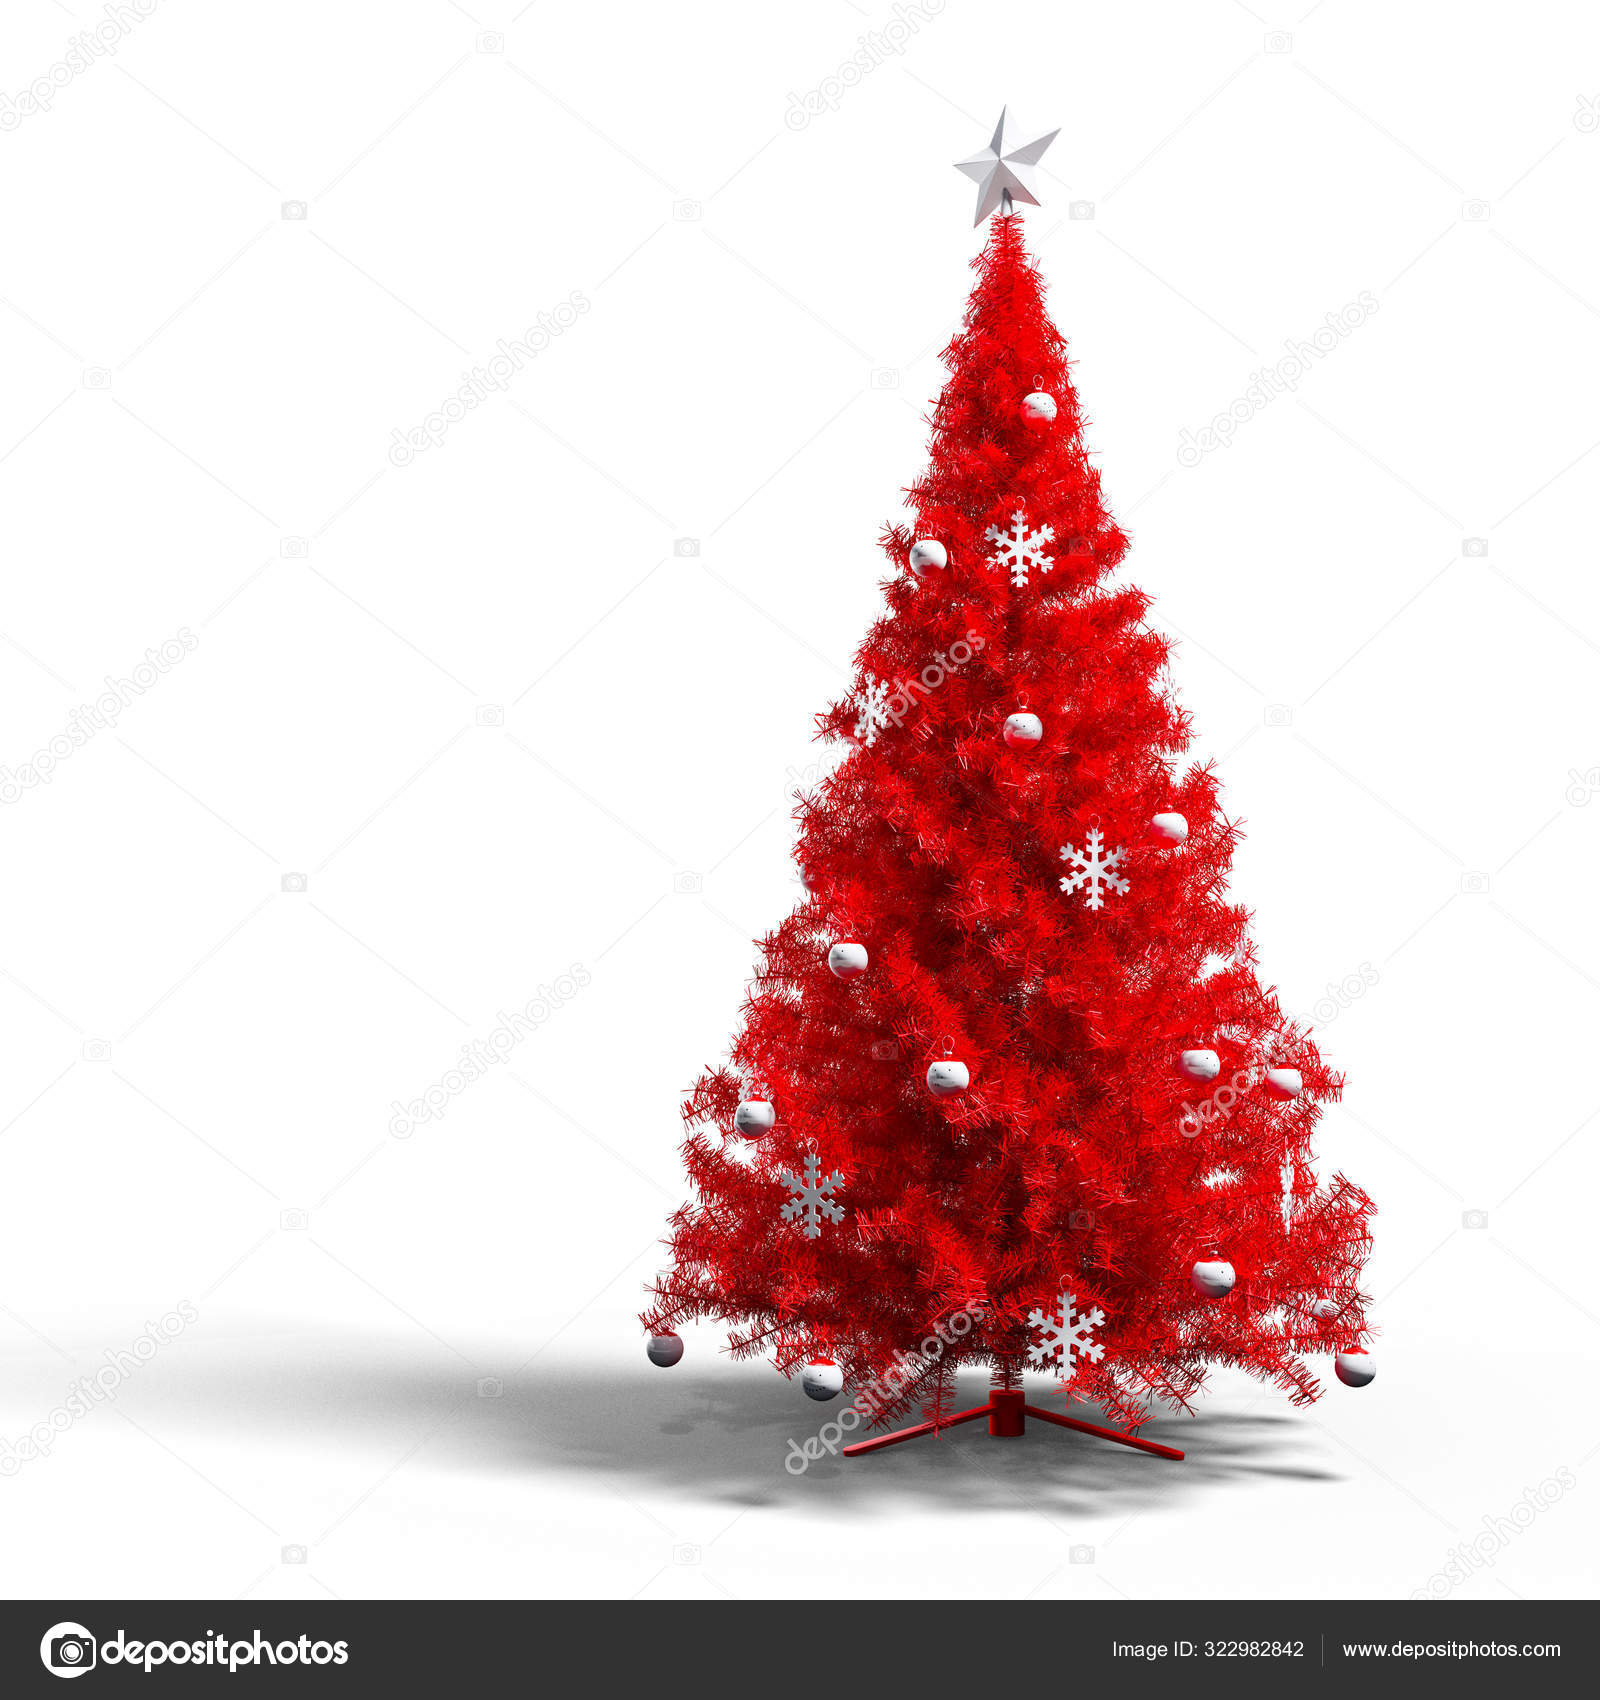 Red Christmas Tree Ornaments Star White Background Stock Photo Image By C Shlapak 322982842